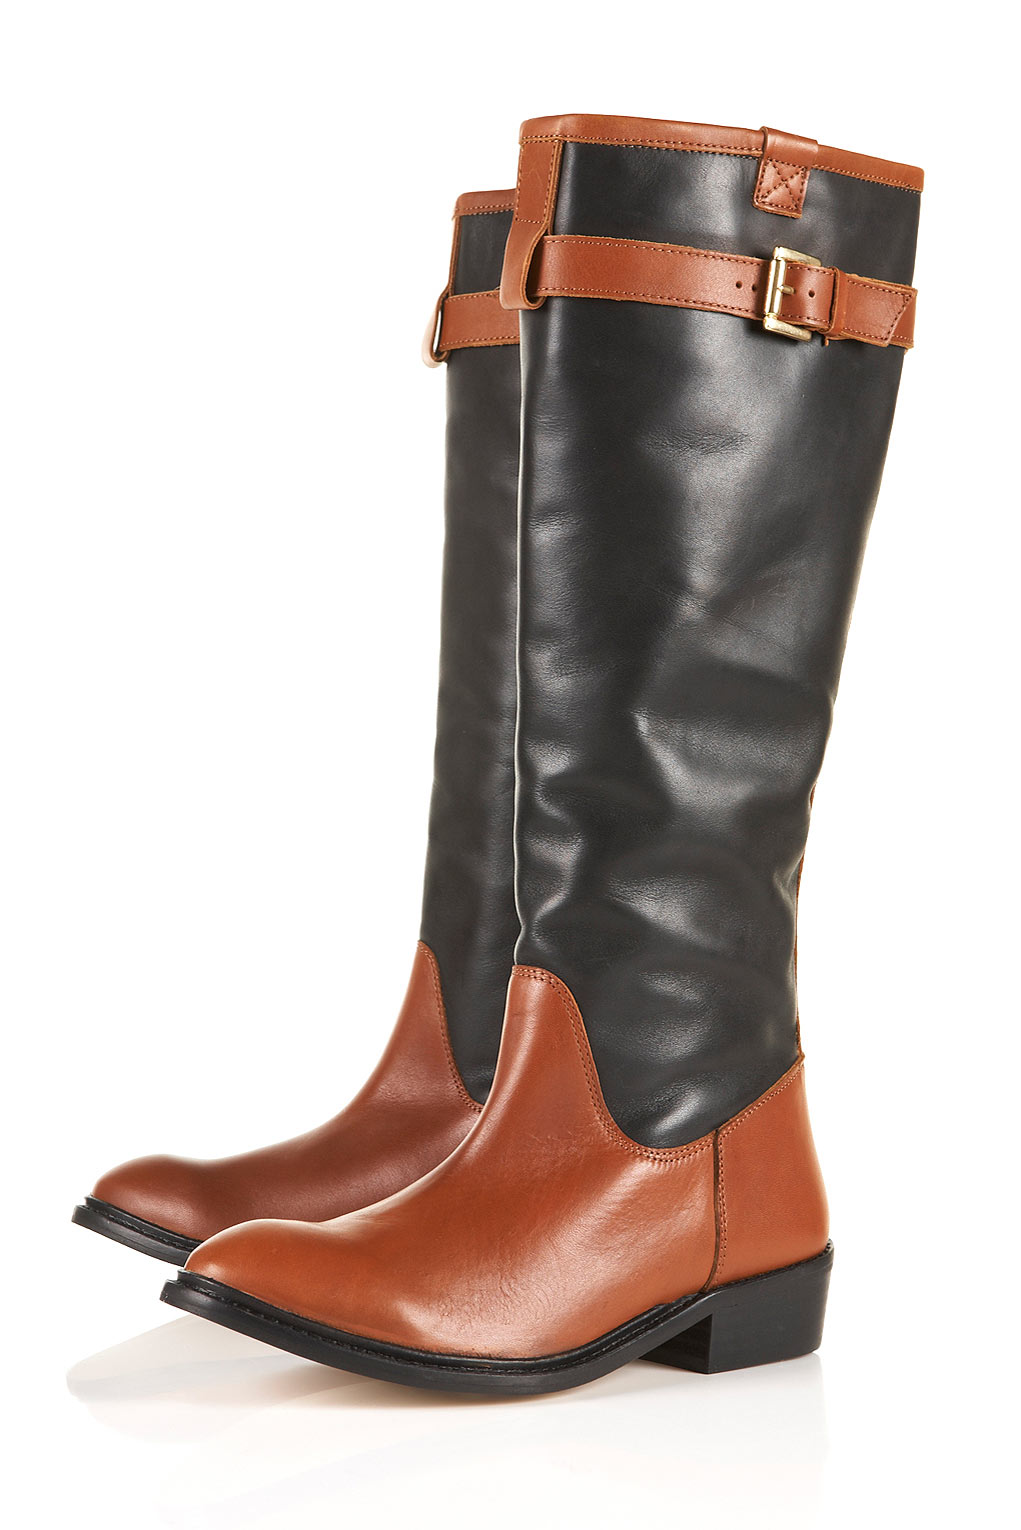 lennie top 5 flat sole boots for aw12